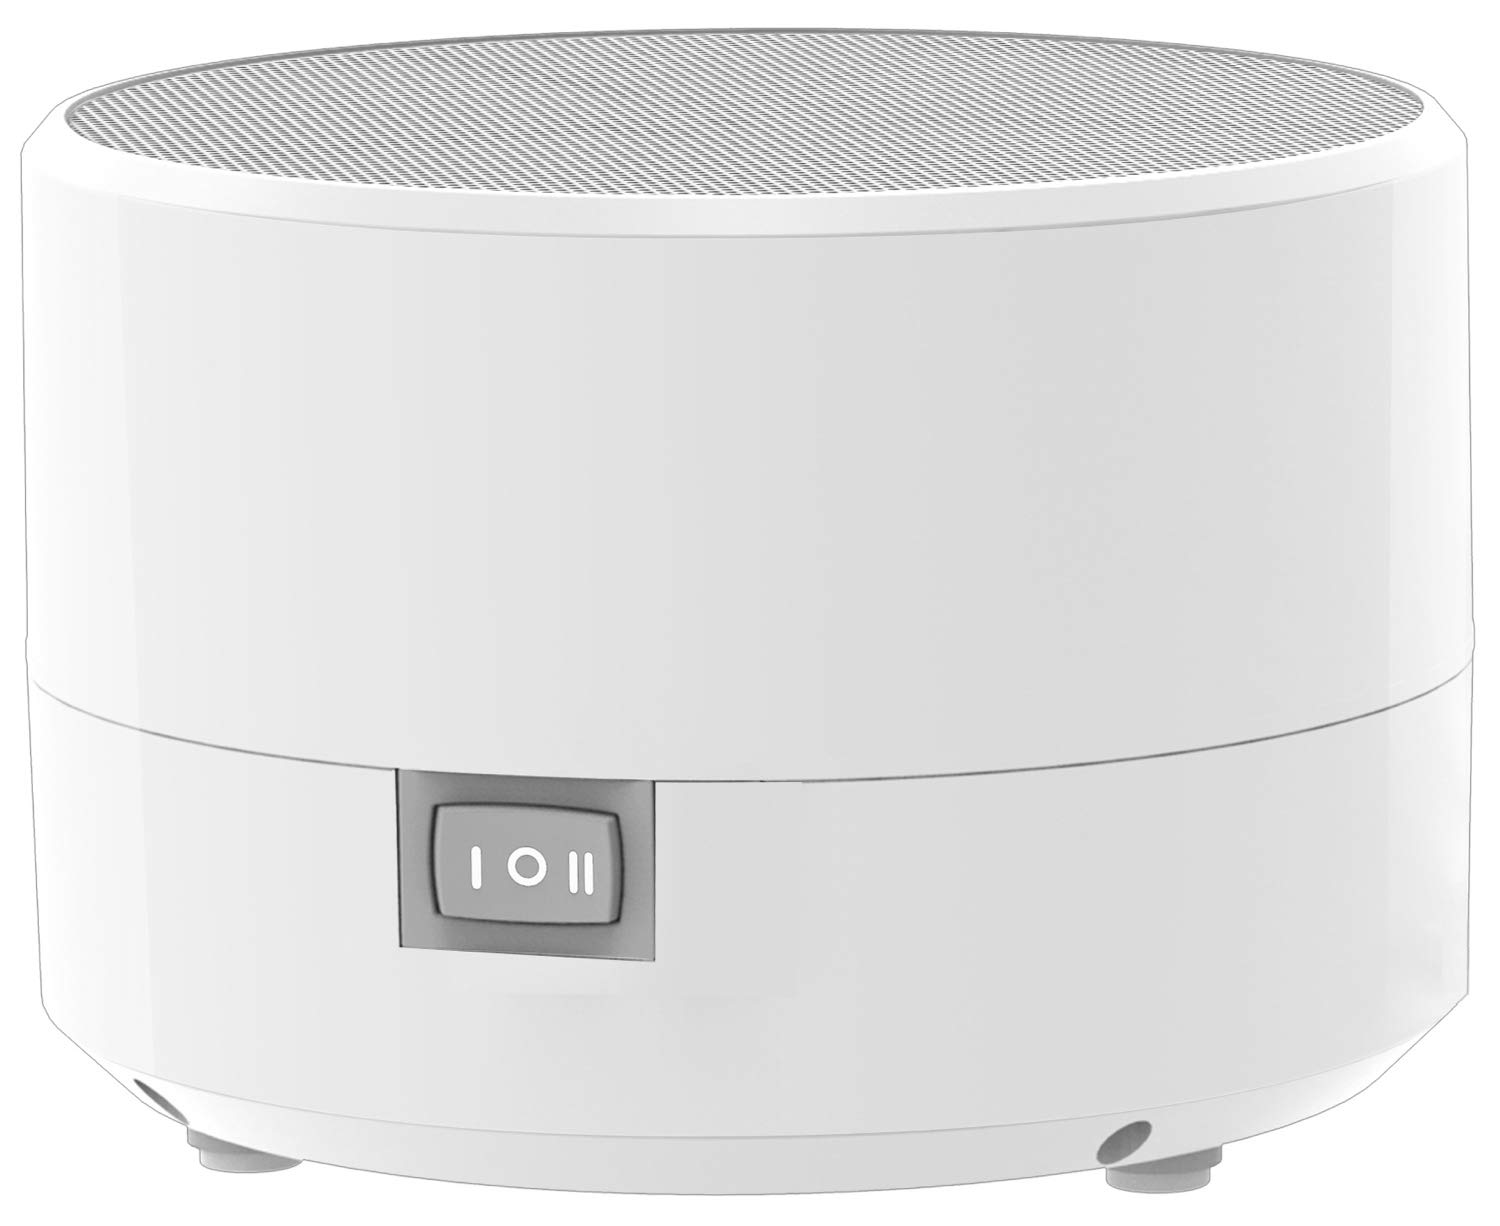 Big Red Rooster White Noise Machine   Sound Machine with Real Fan Inside   Non-Looping White Noise   Sound Machine for Sleeping & Relaxation   Sleep Sound Therapy   Office Privacy